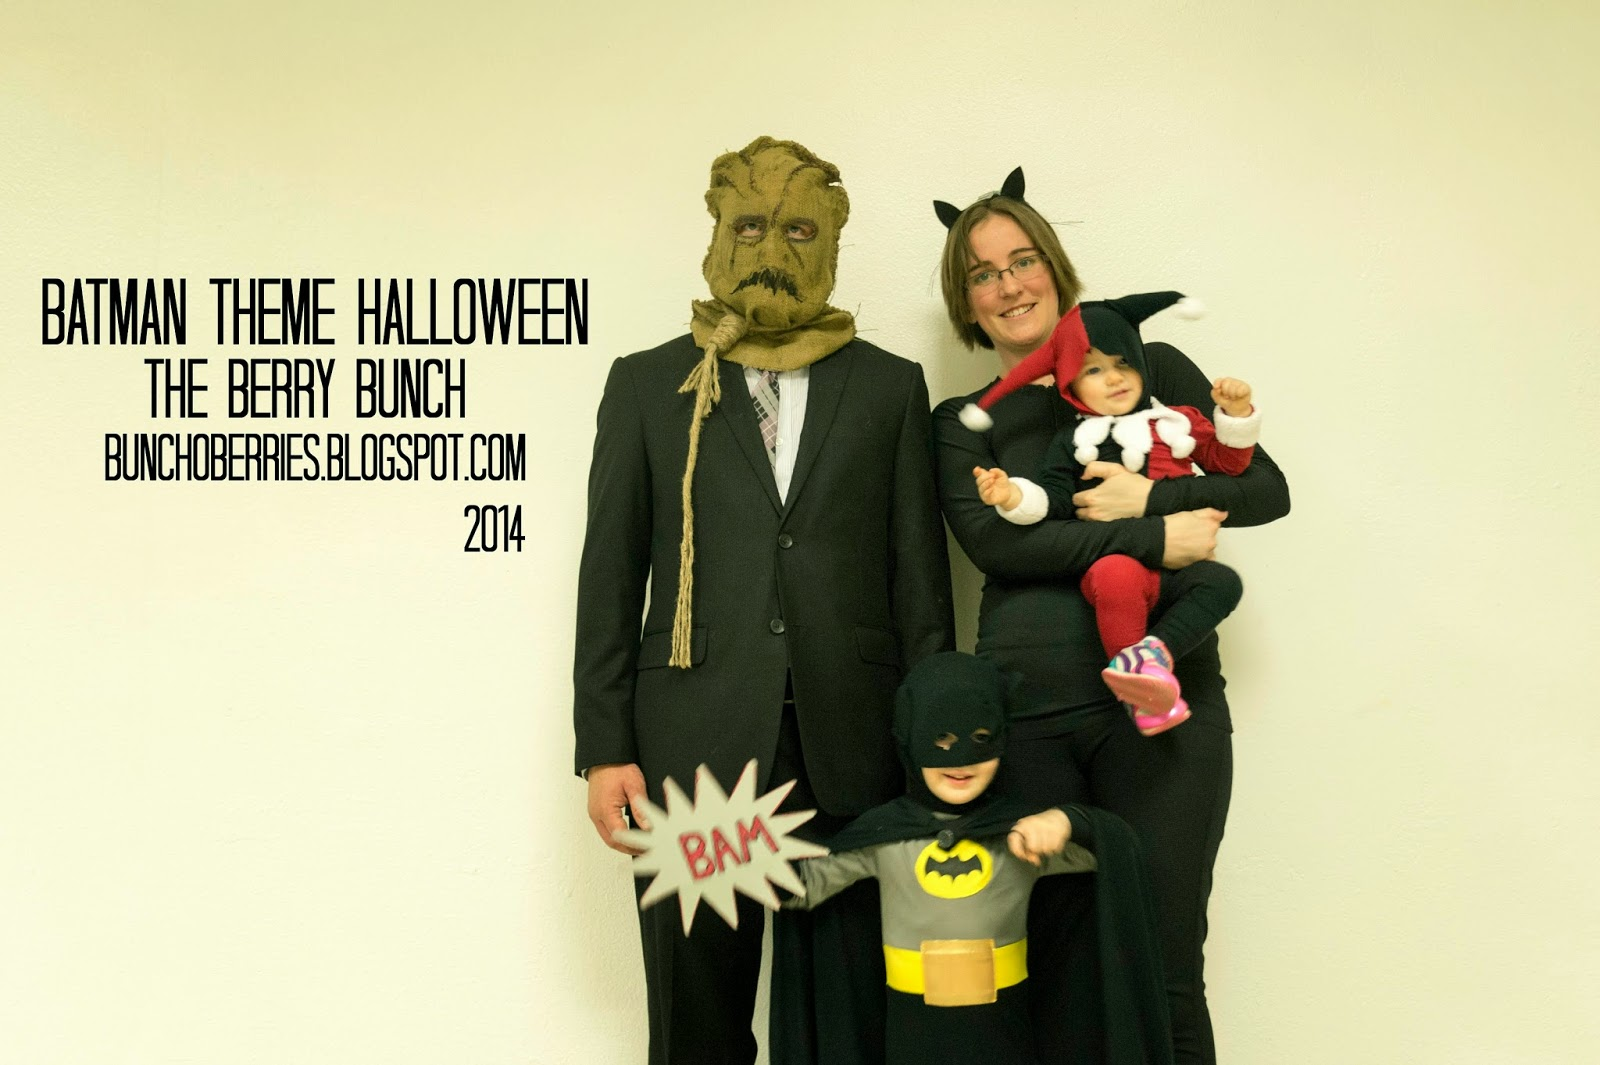 The Berry Bunch: Happy Halloween: Batman Theme Costumes: Batman